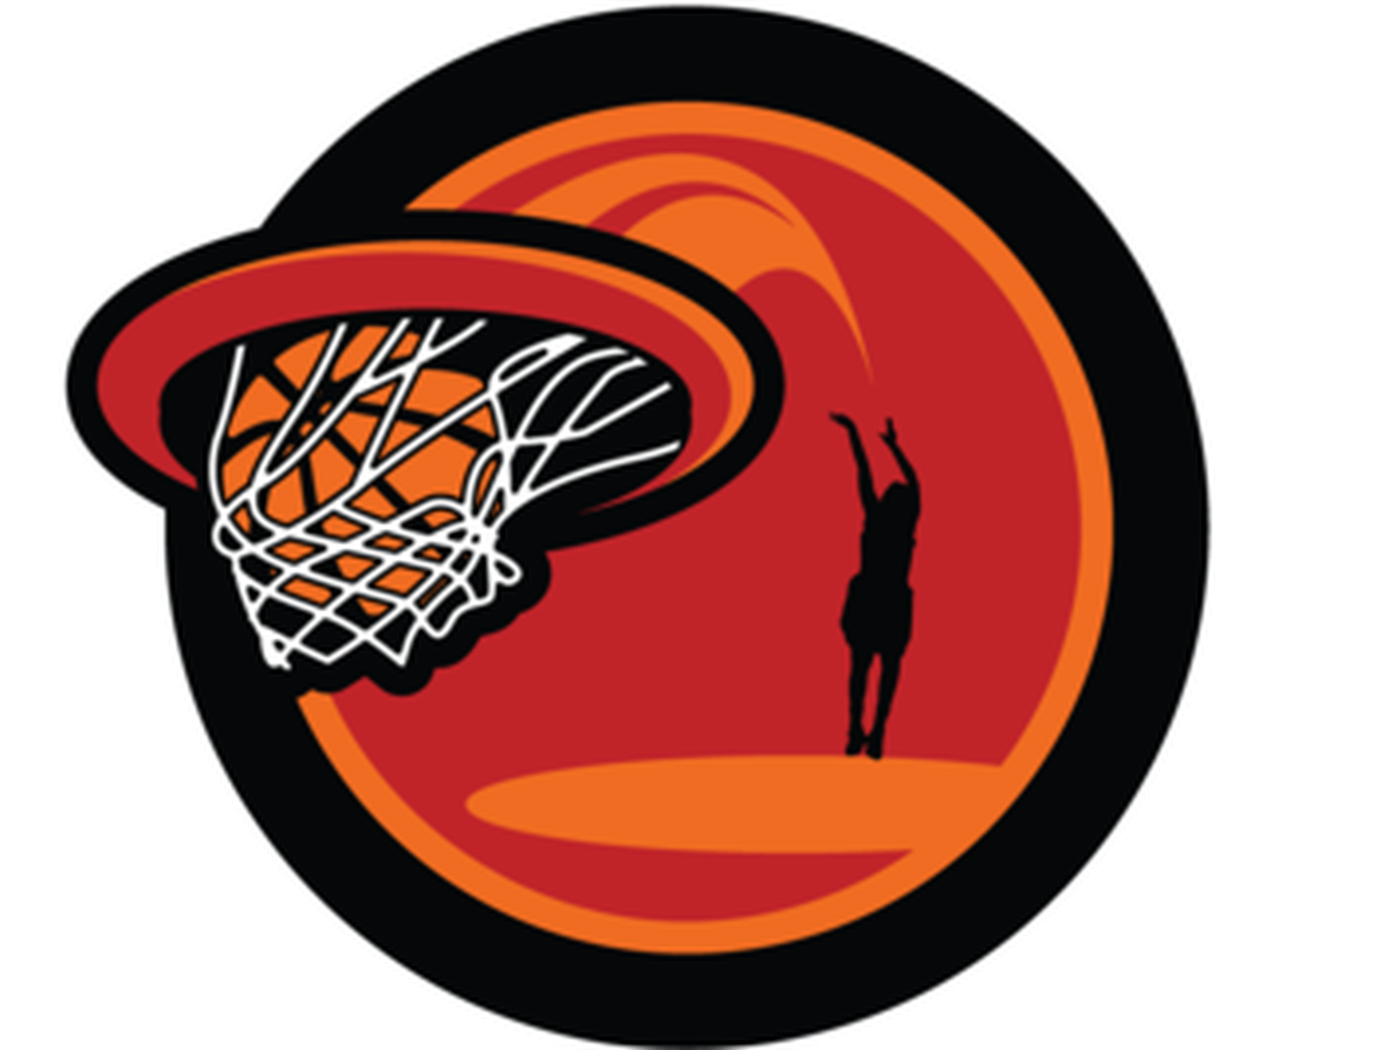 Popped basketball clipart jpg royalty free stock Top 15 WNBA Players Of All Time: Who Were The Top Players Excluded ... jpg royalty free stock